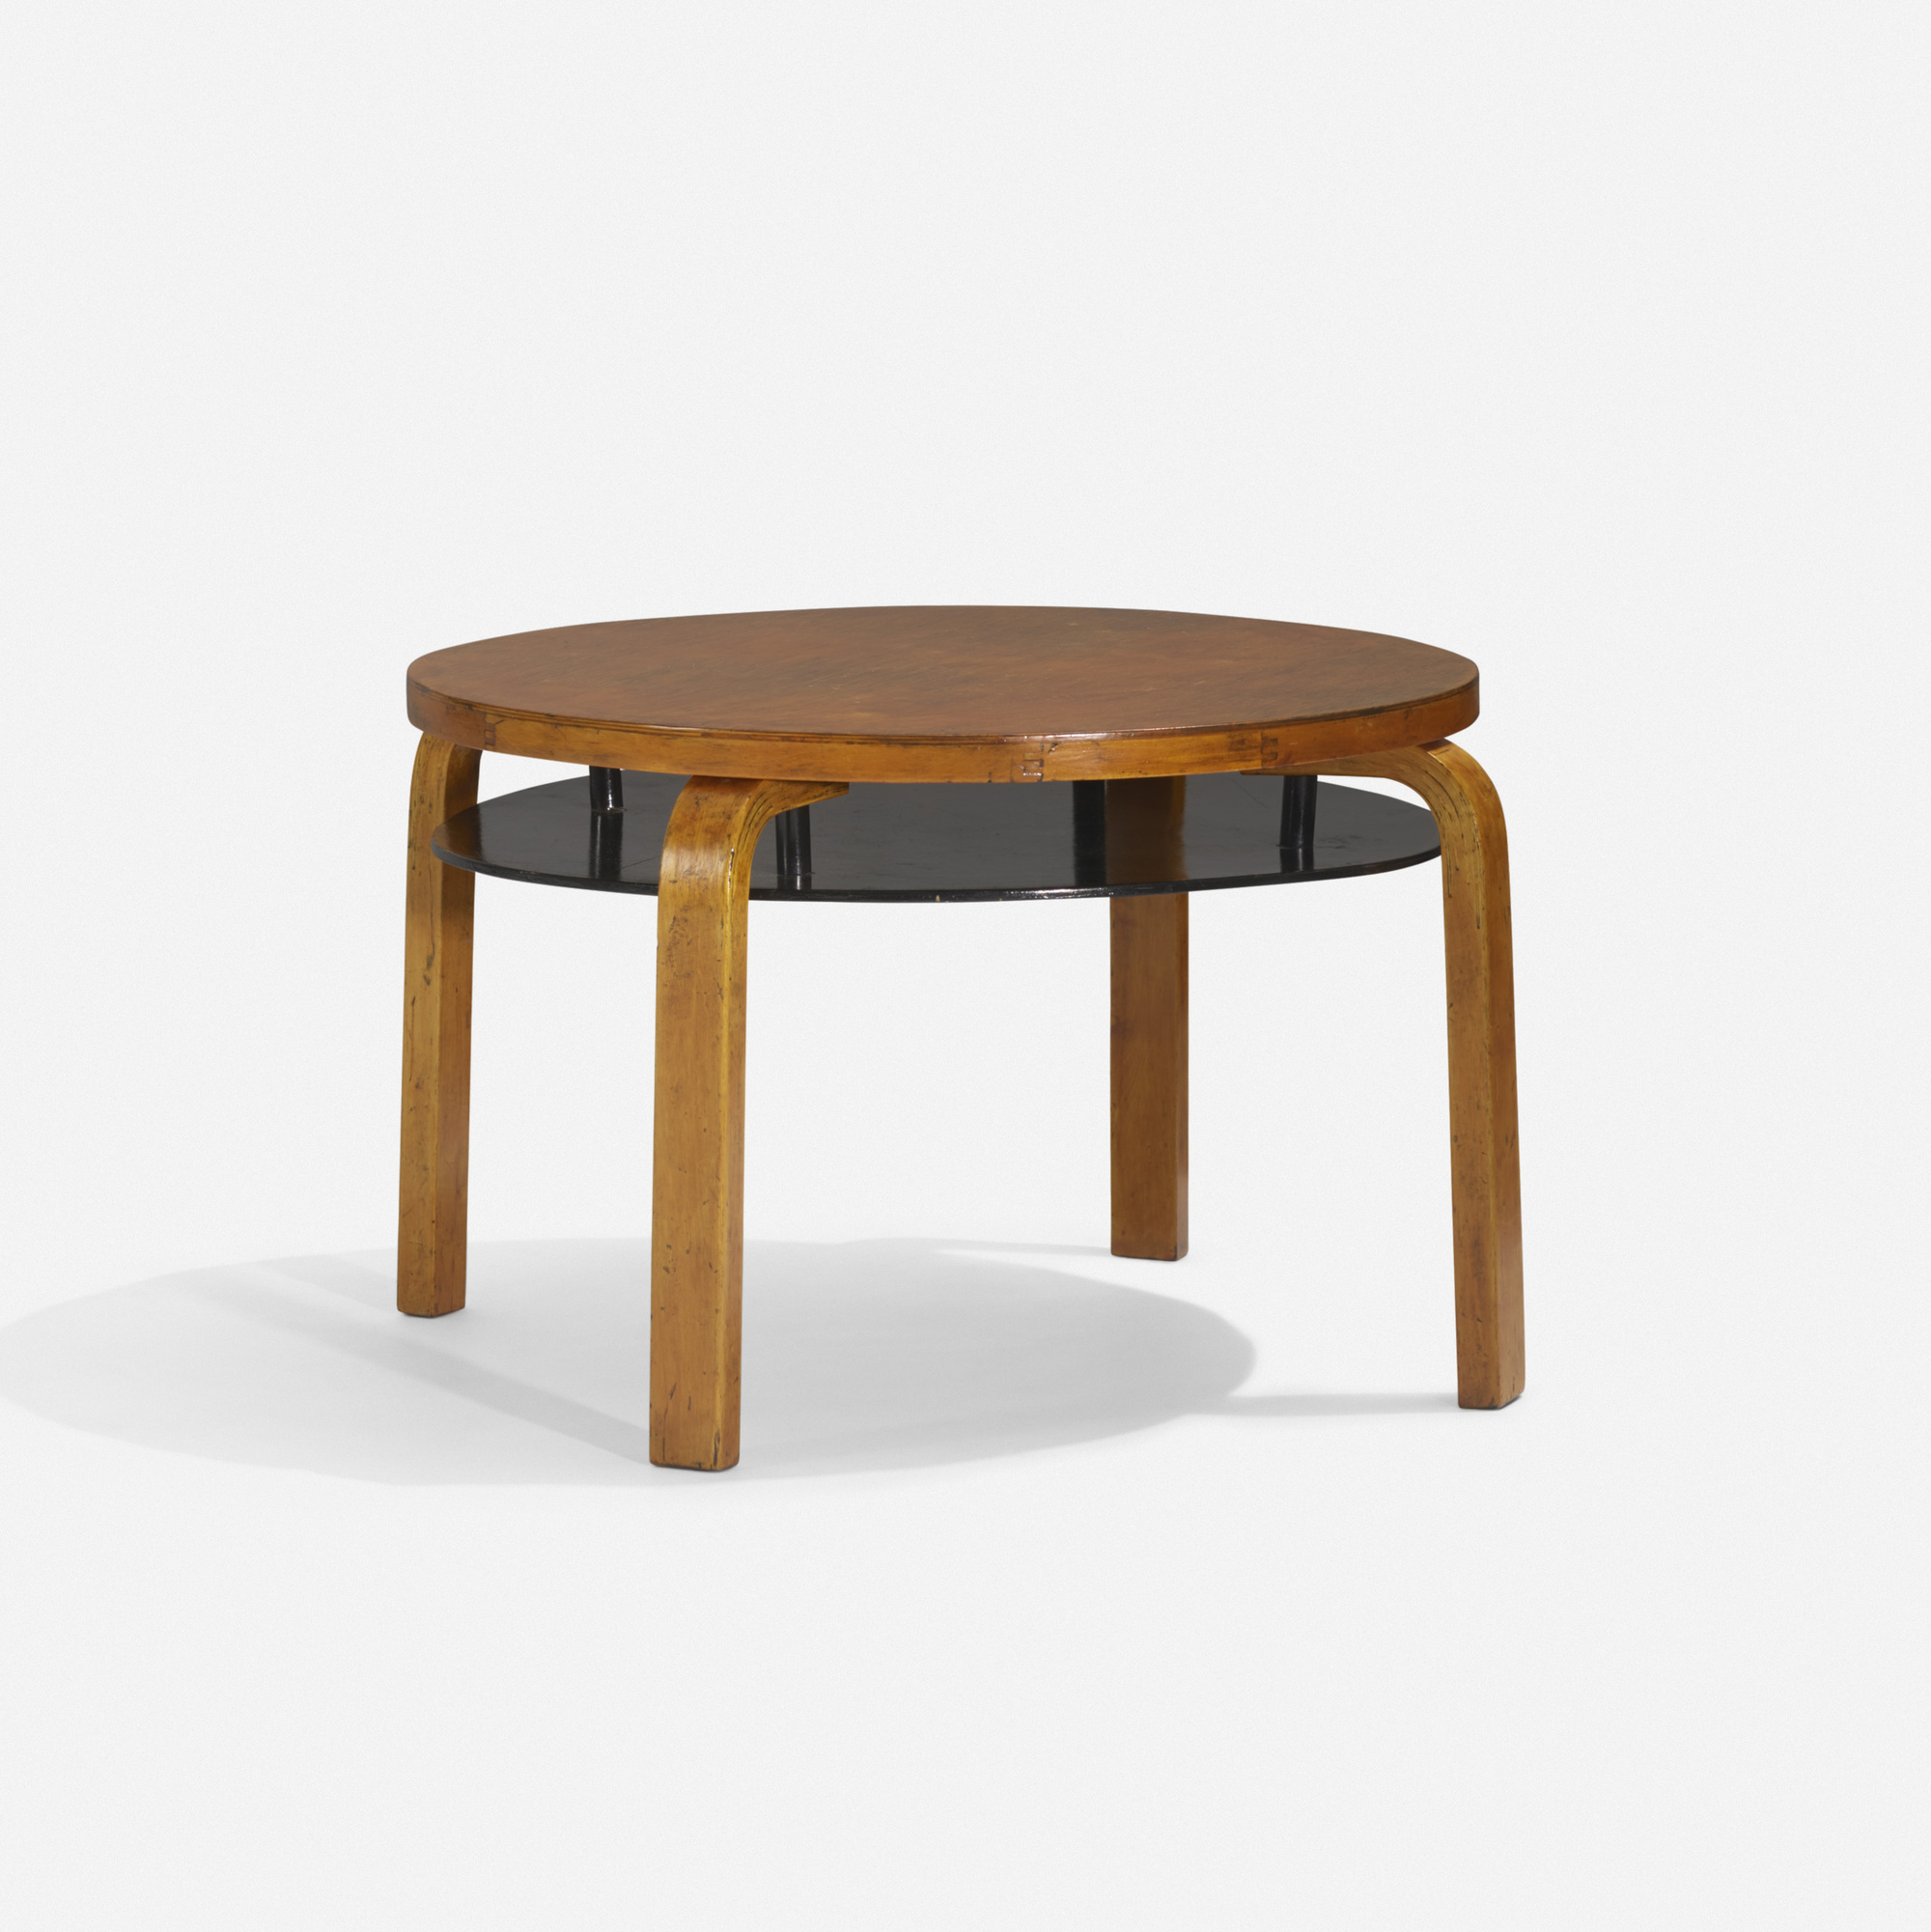 108 alvar aalto coffee table model 70 for Table design 70